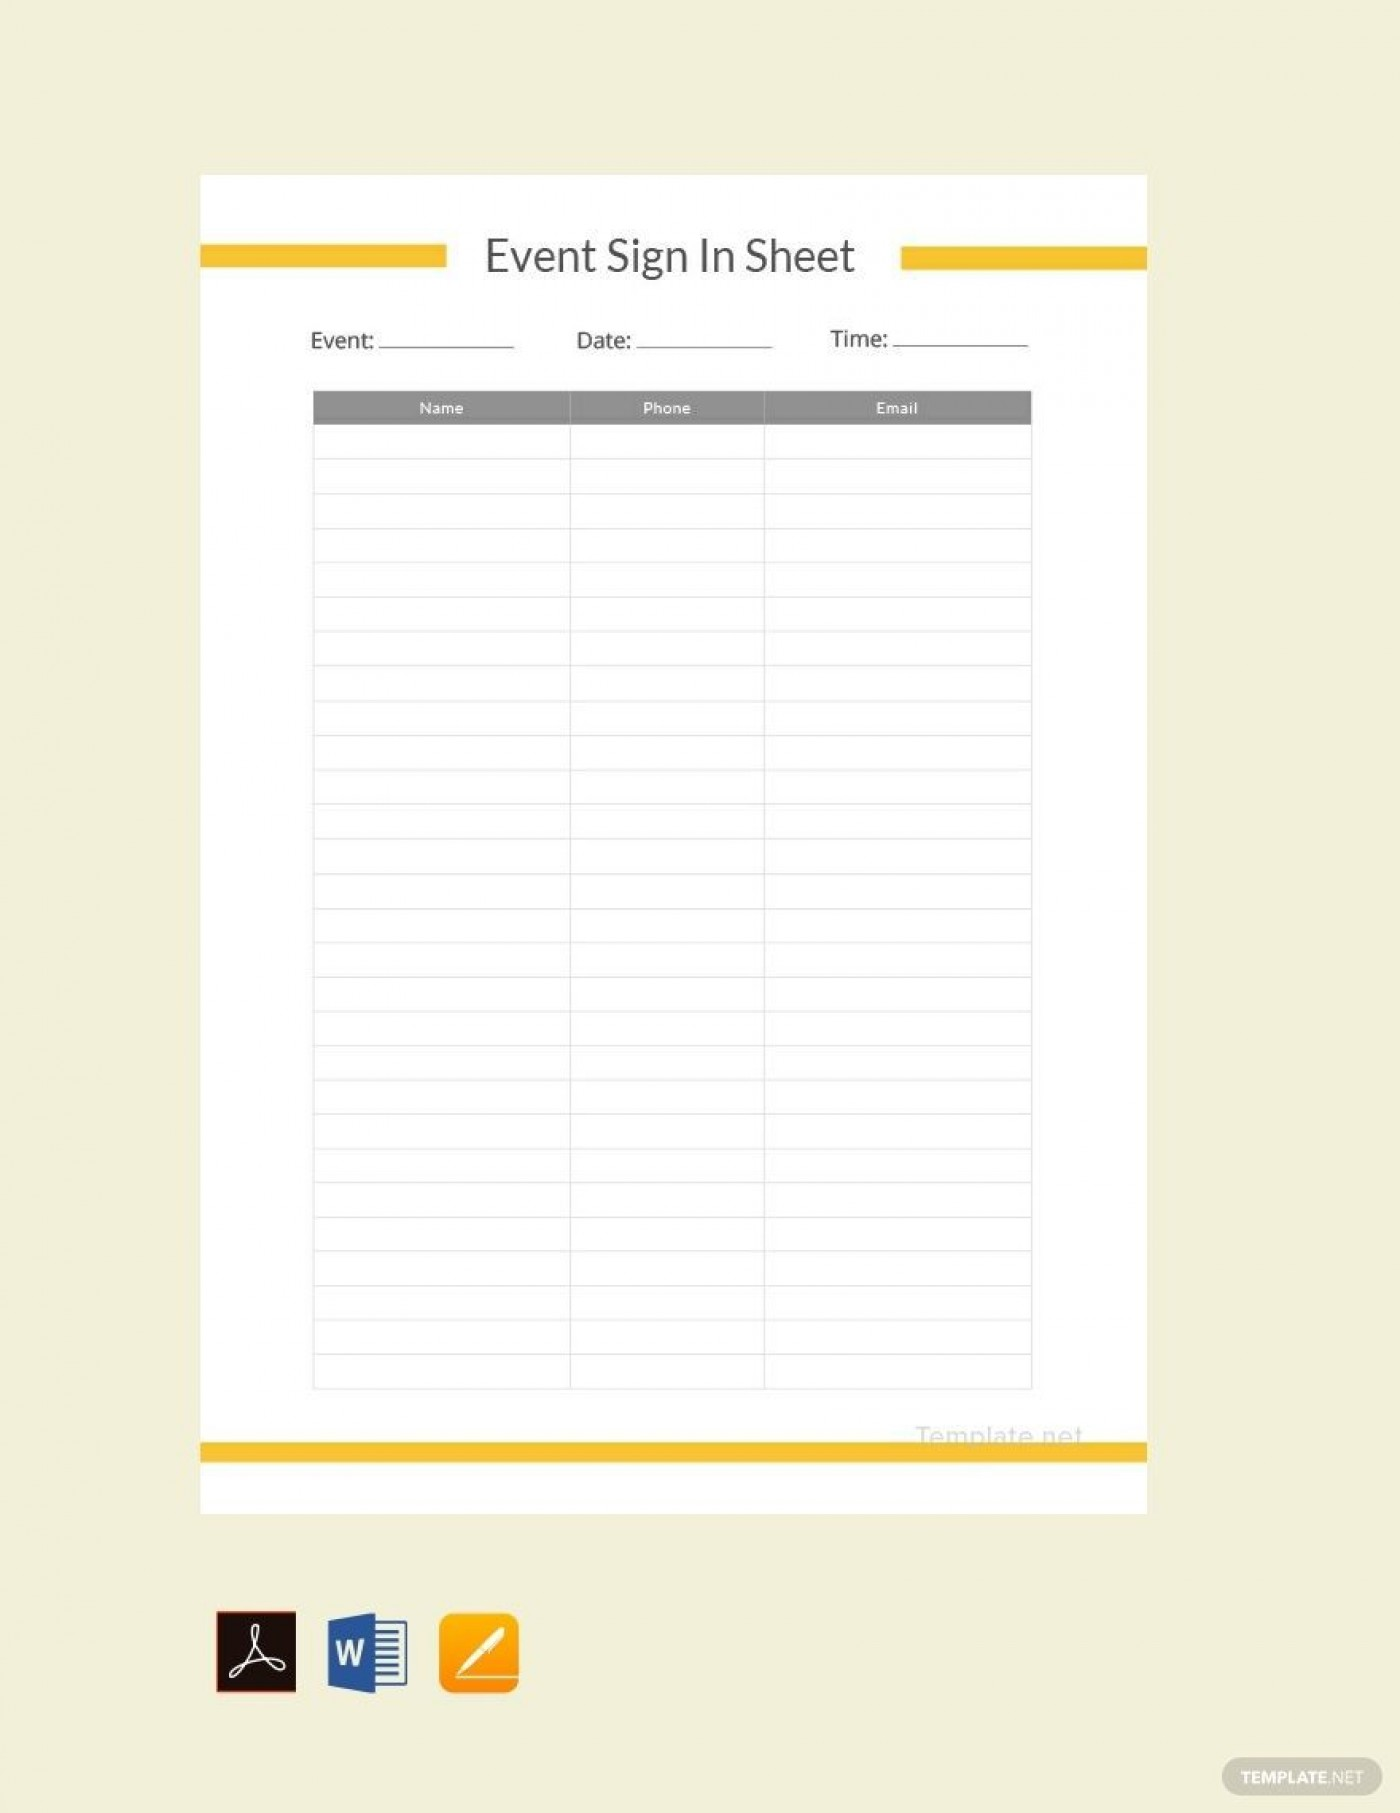 000 Awful Sign In Sheet Template Doc High Def  For Doctor Office Up Google Sample1400